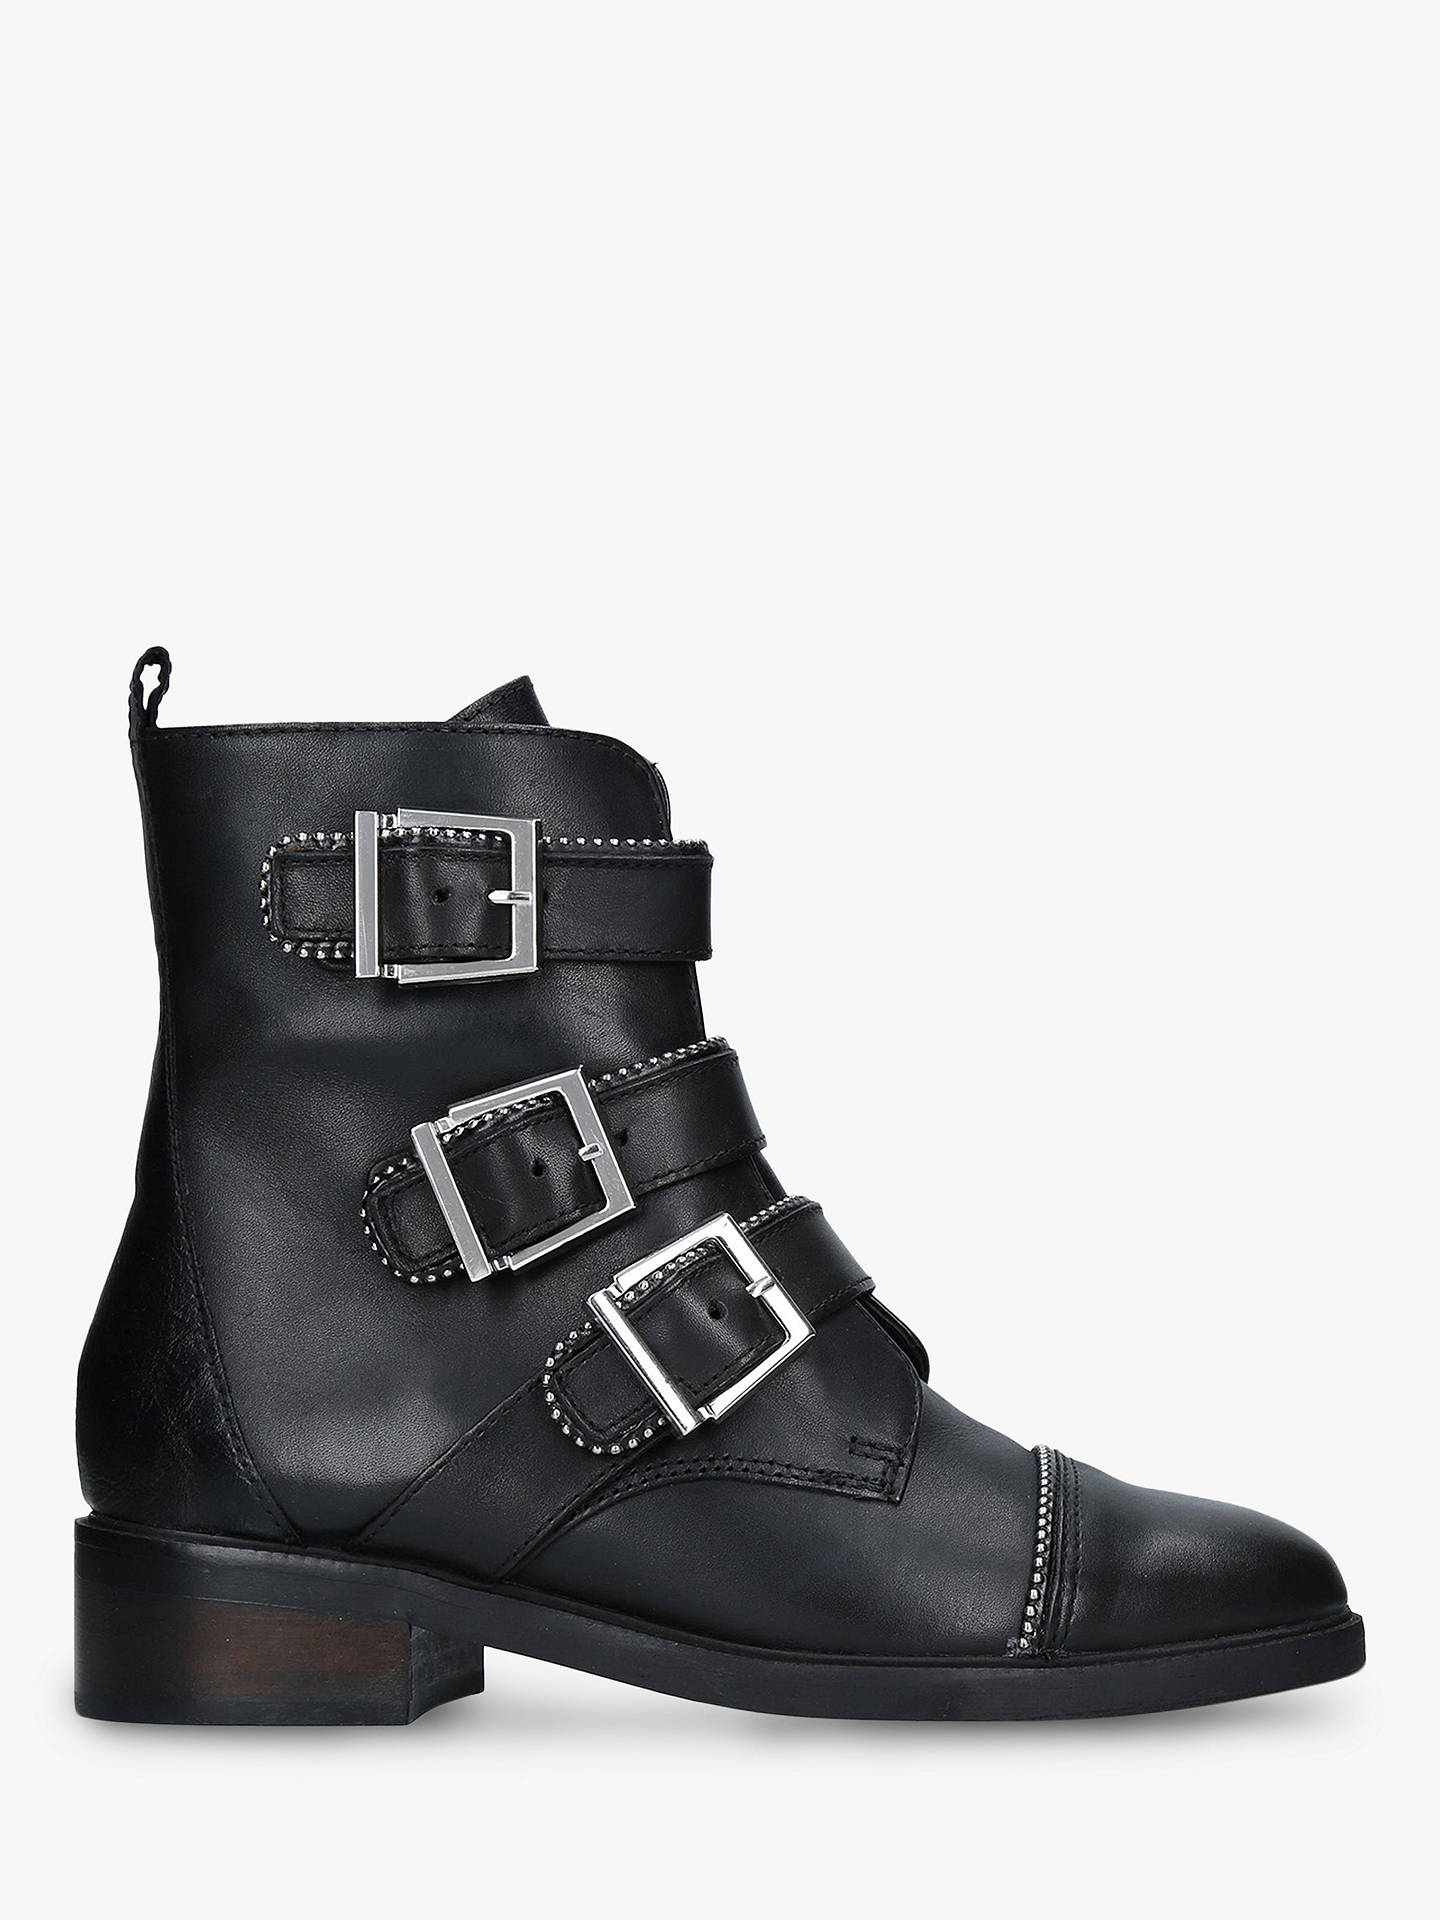 99d6a9034600 Buy Carvela Sparse Triple Buckle Ankle Boots